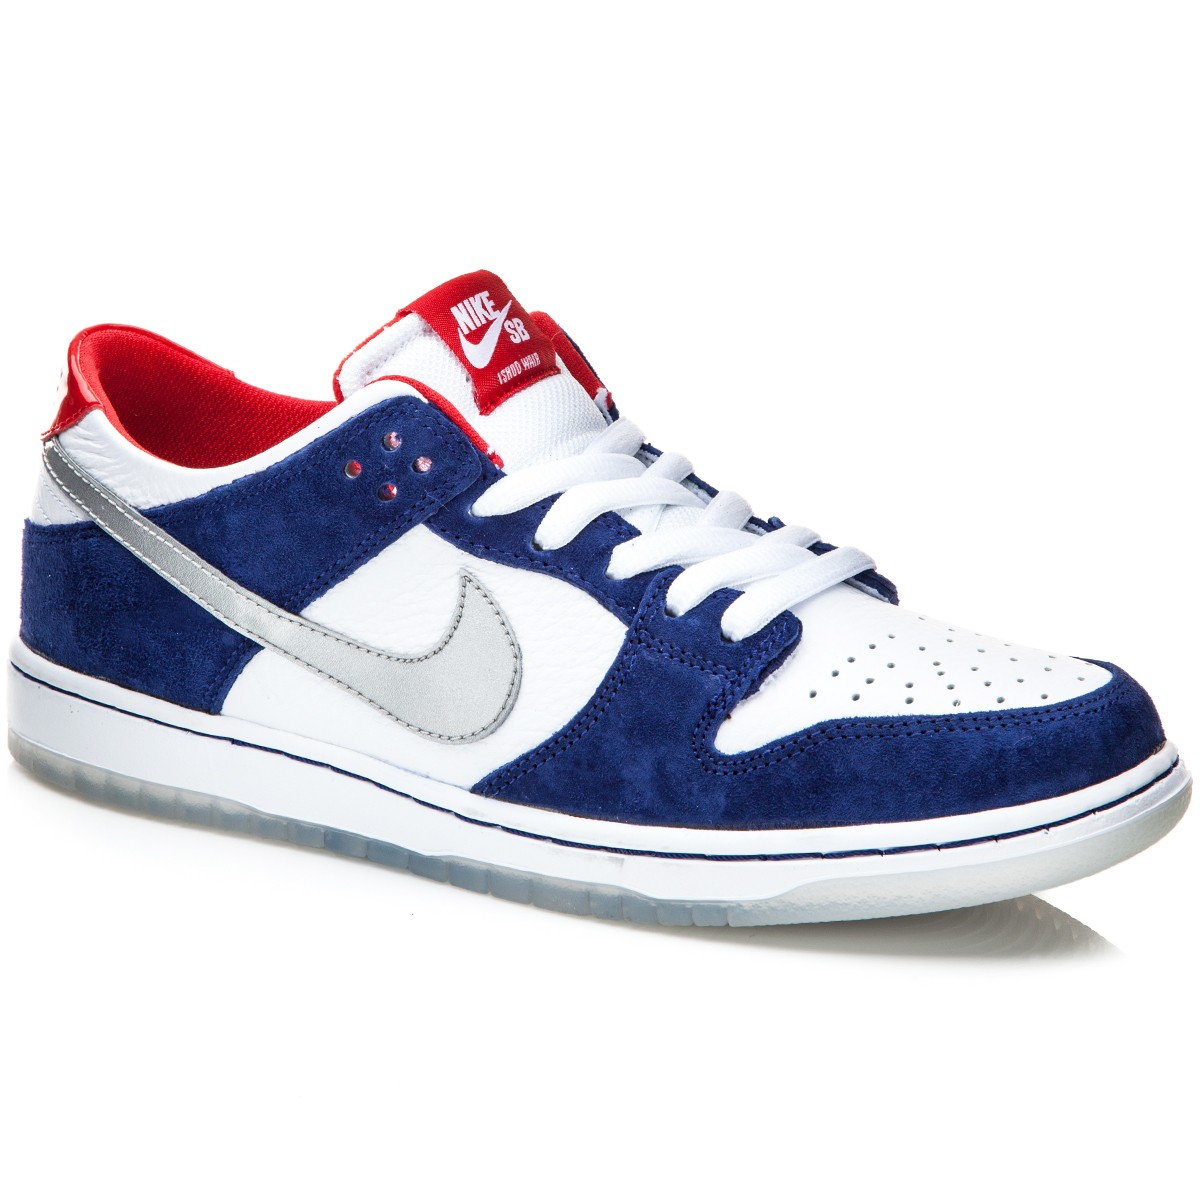 nike dunk low pro iw shoes. Black Bedroom Furniture Sets. Home Design Ideas